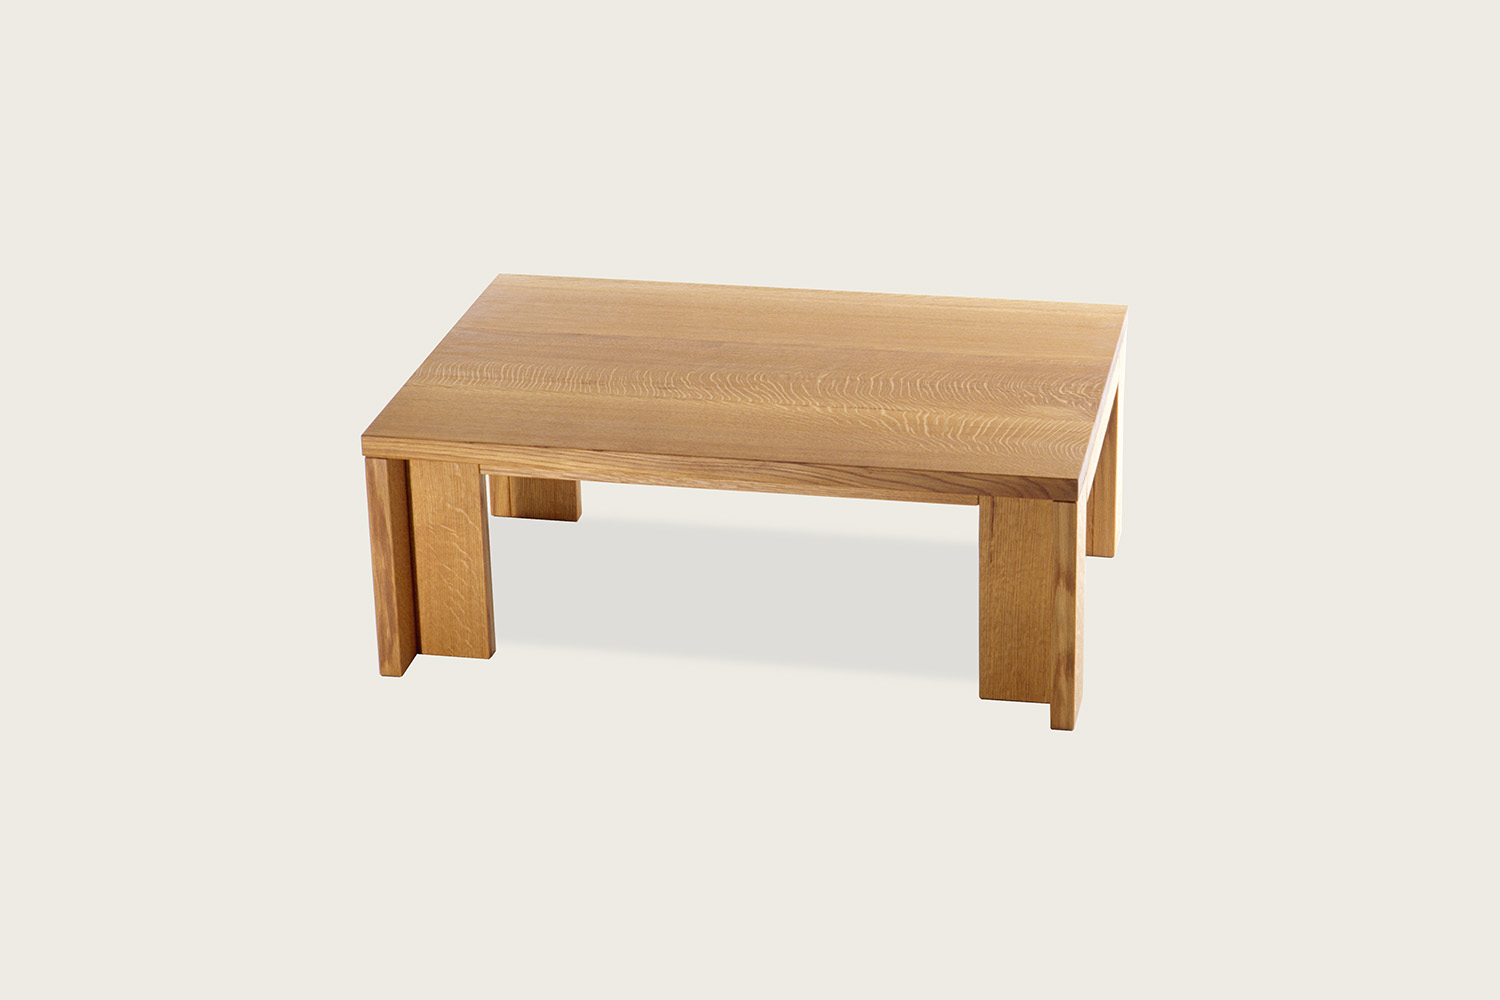 Insight Coffee Table in solid oak - Speke Klein